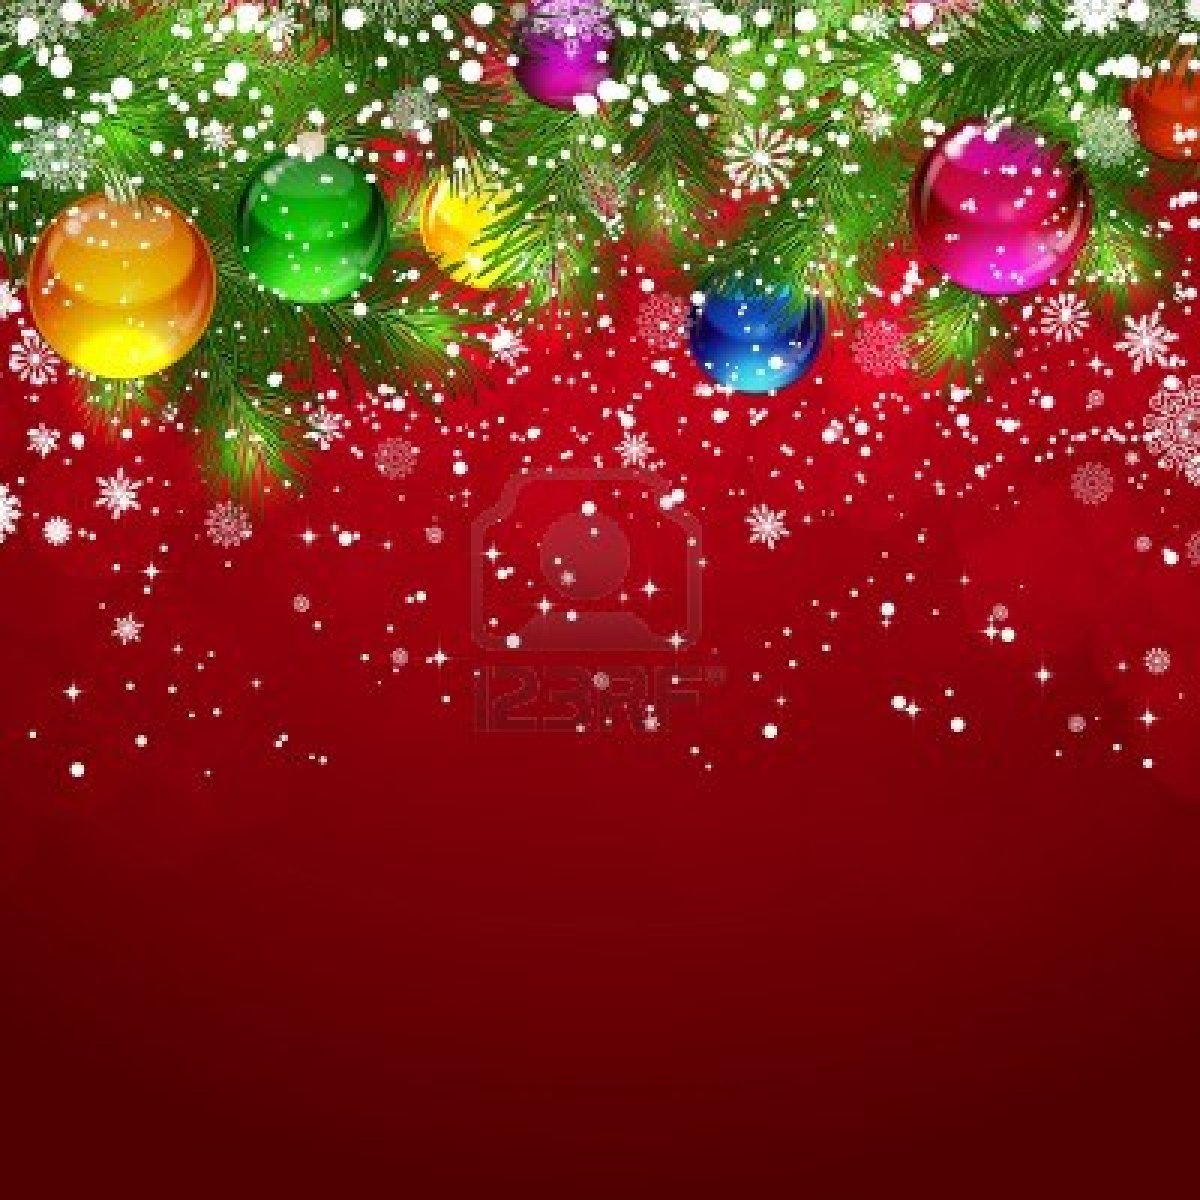 animated christmas wallpapers free wallpaperpulse 1200x1200 - Free Animated Christmas Wallpaper